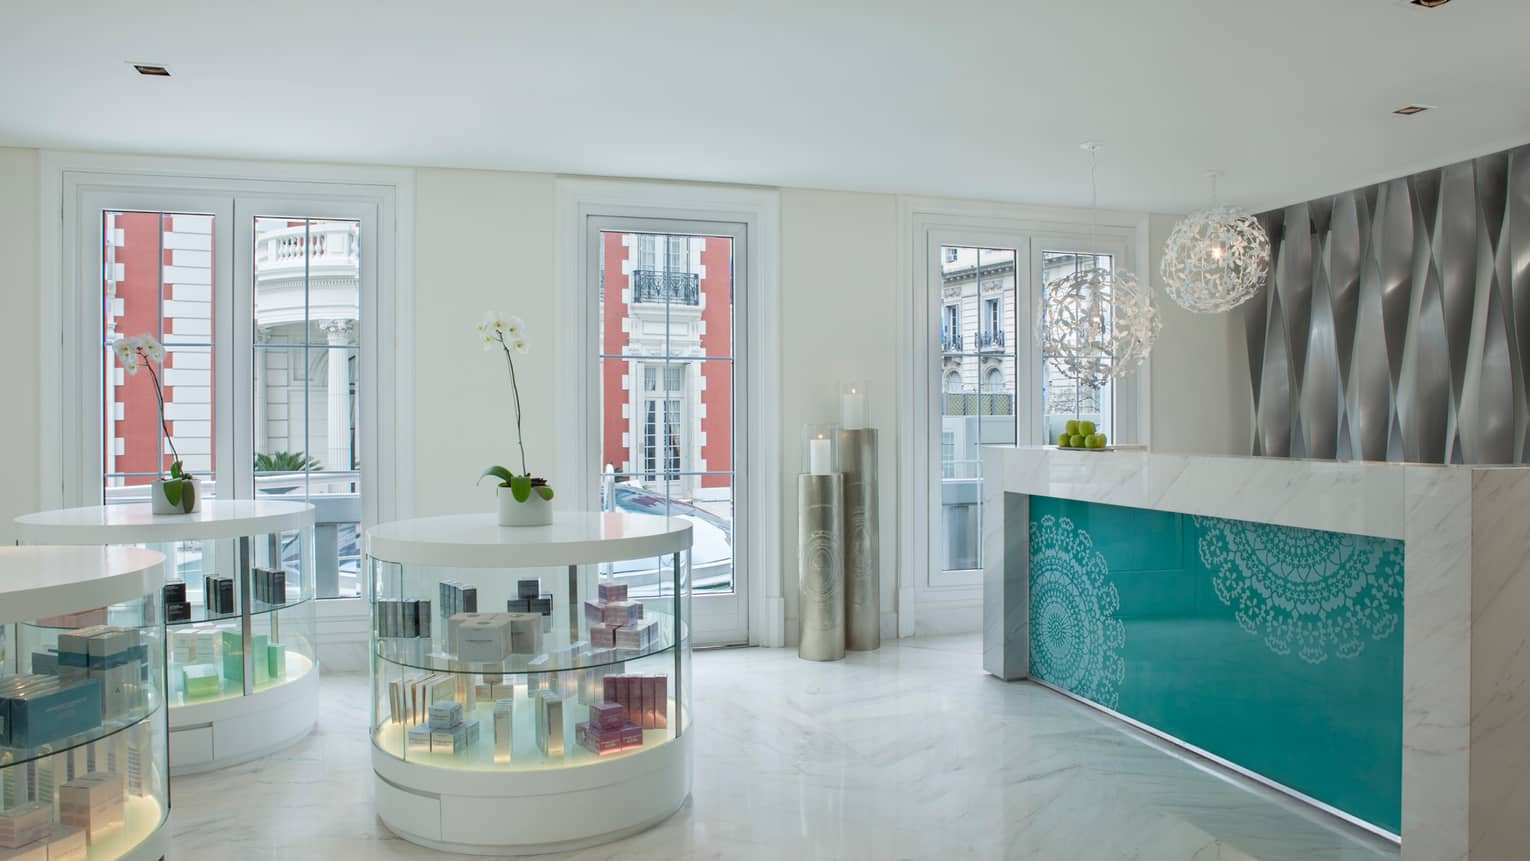 White marble spa lobby with round glass display cabinets, desk with teal pattern, white lamp